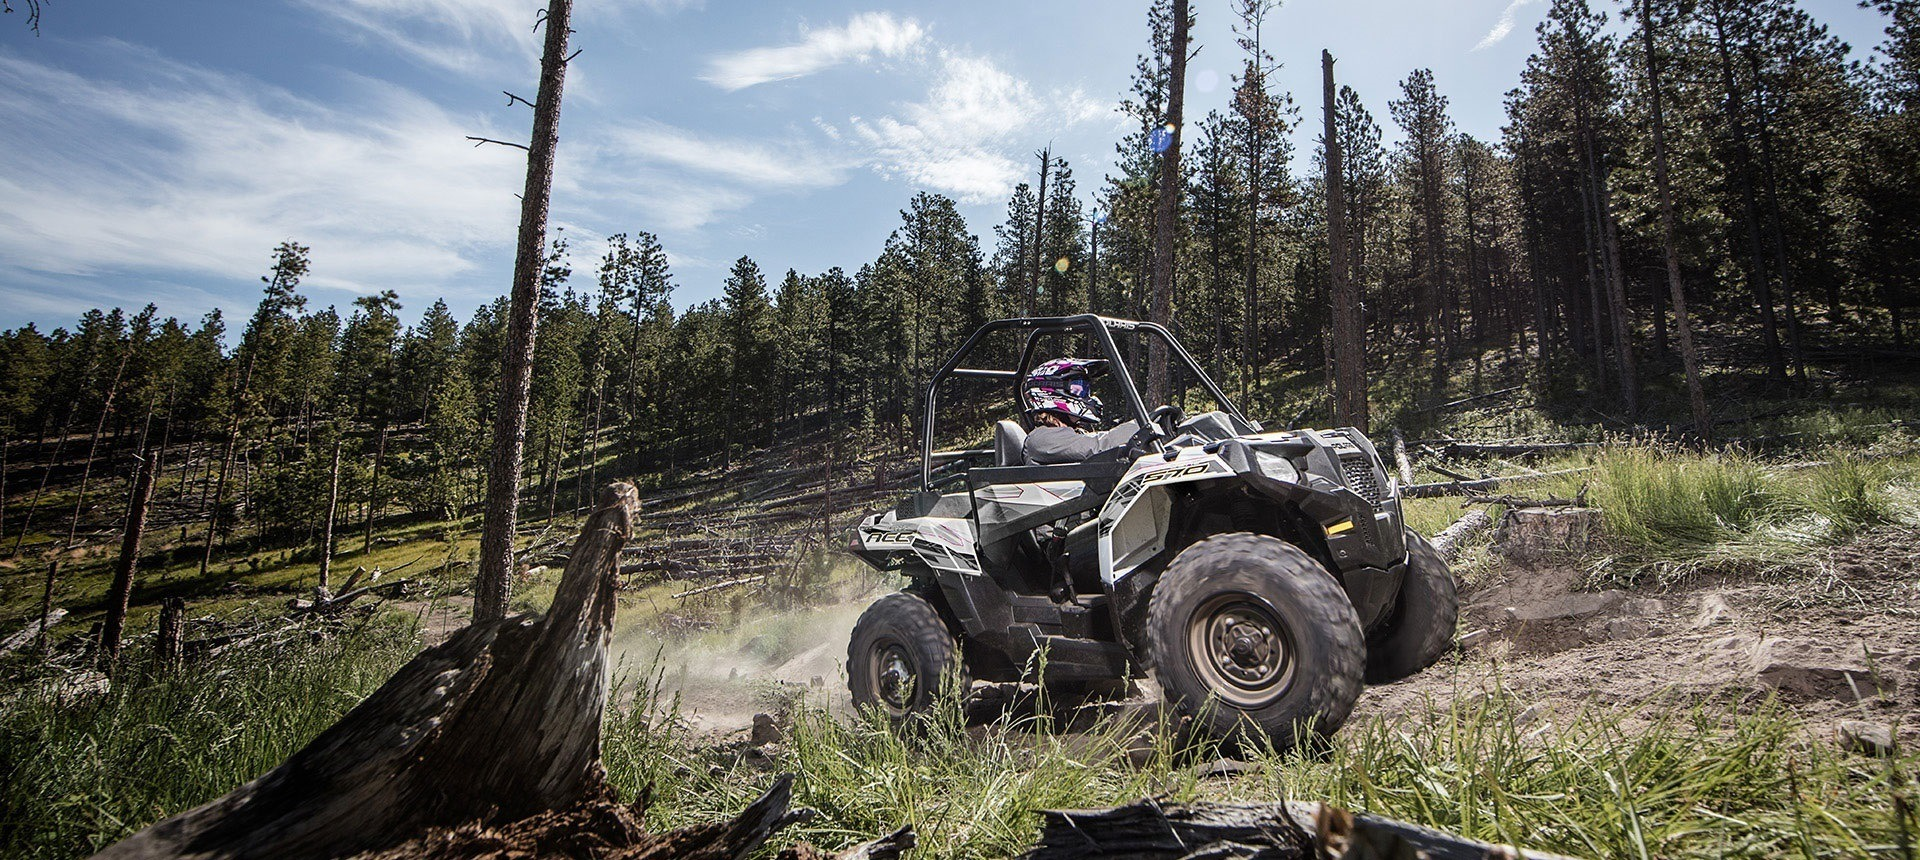 2019 Polaris Ace 570 EPS in Lagrange, Georgia